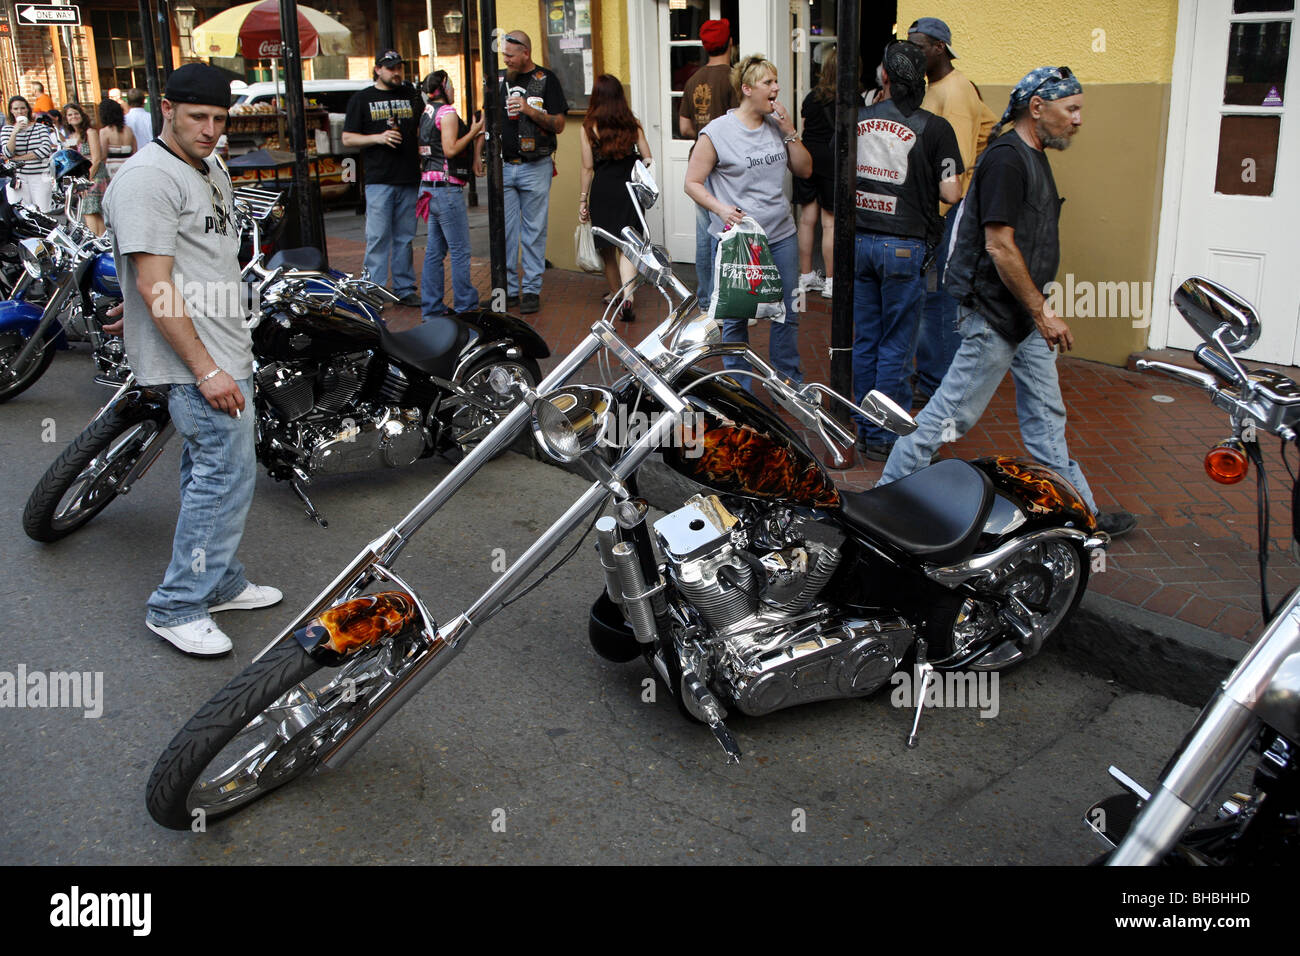 Choppers, Bourbon Street, French Quarter, New Orleans, Louisiana, USA - Stock Image